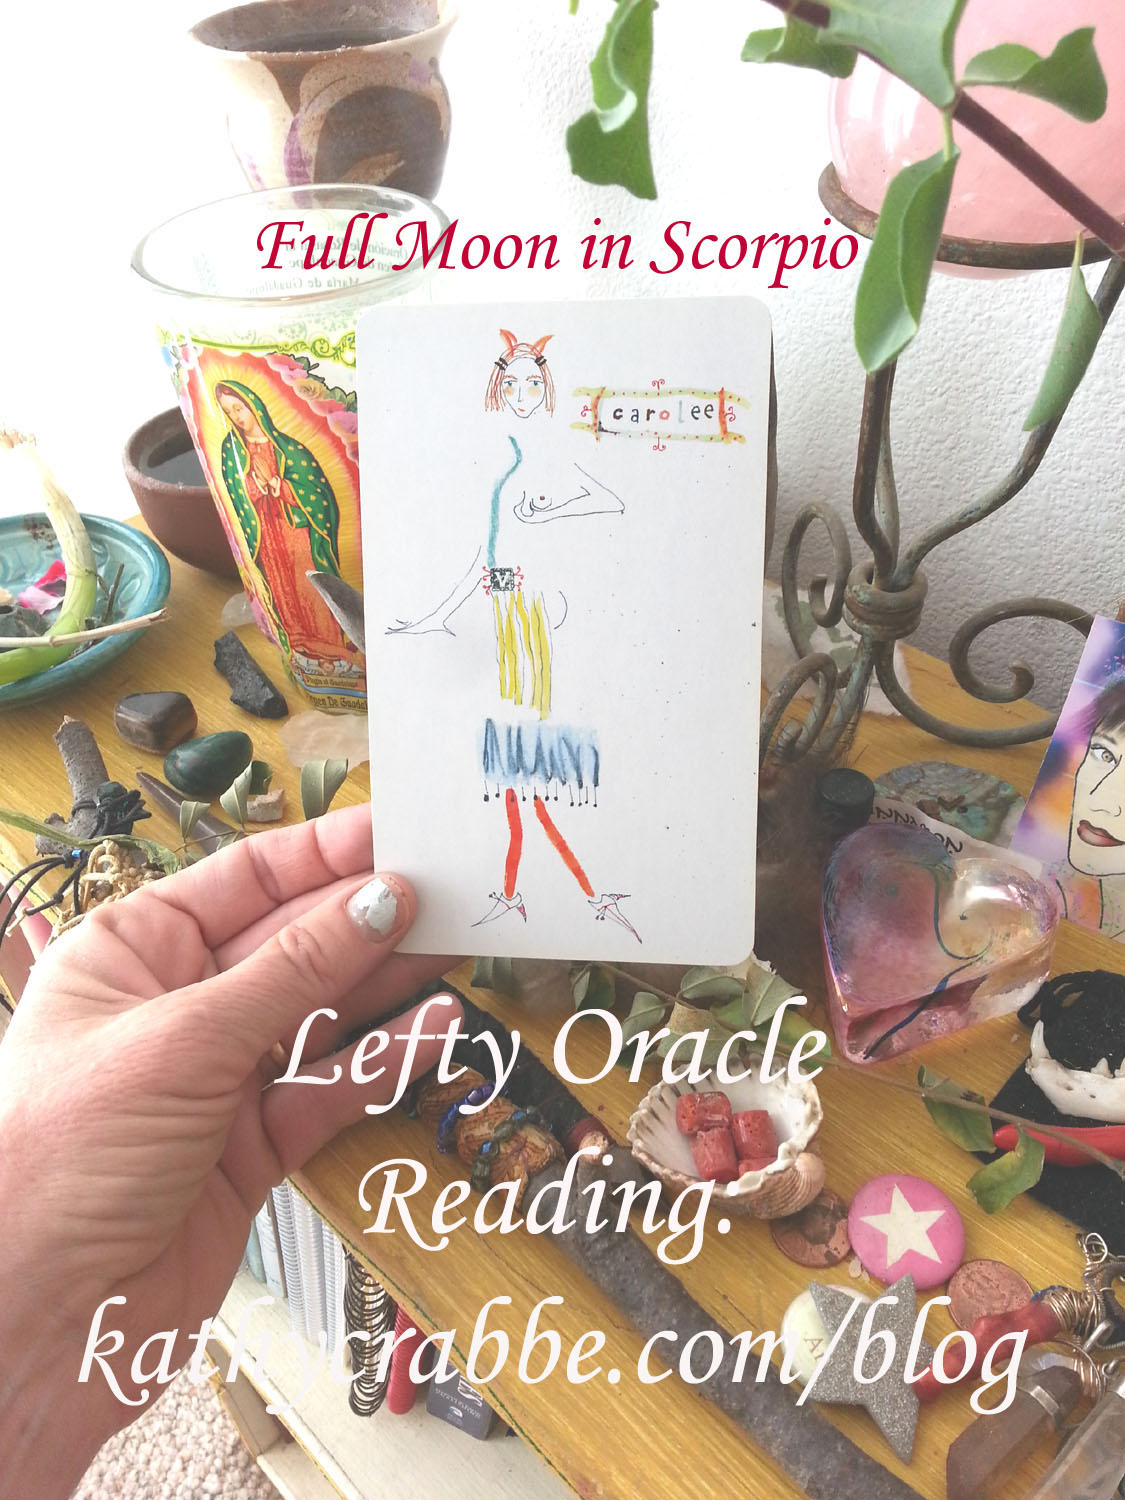 Lefty Oracle Carolee - Full Moon in Scorpio Card